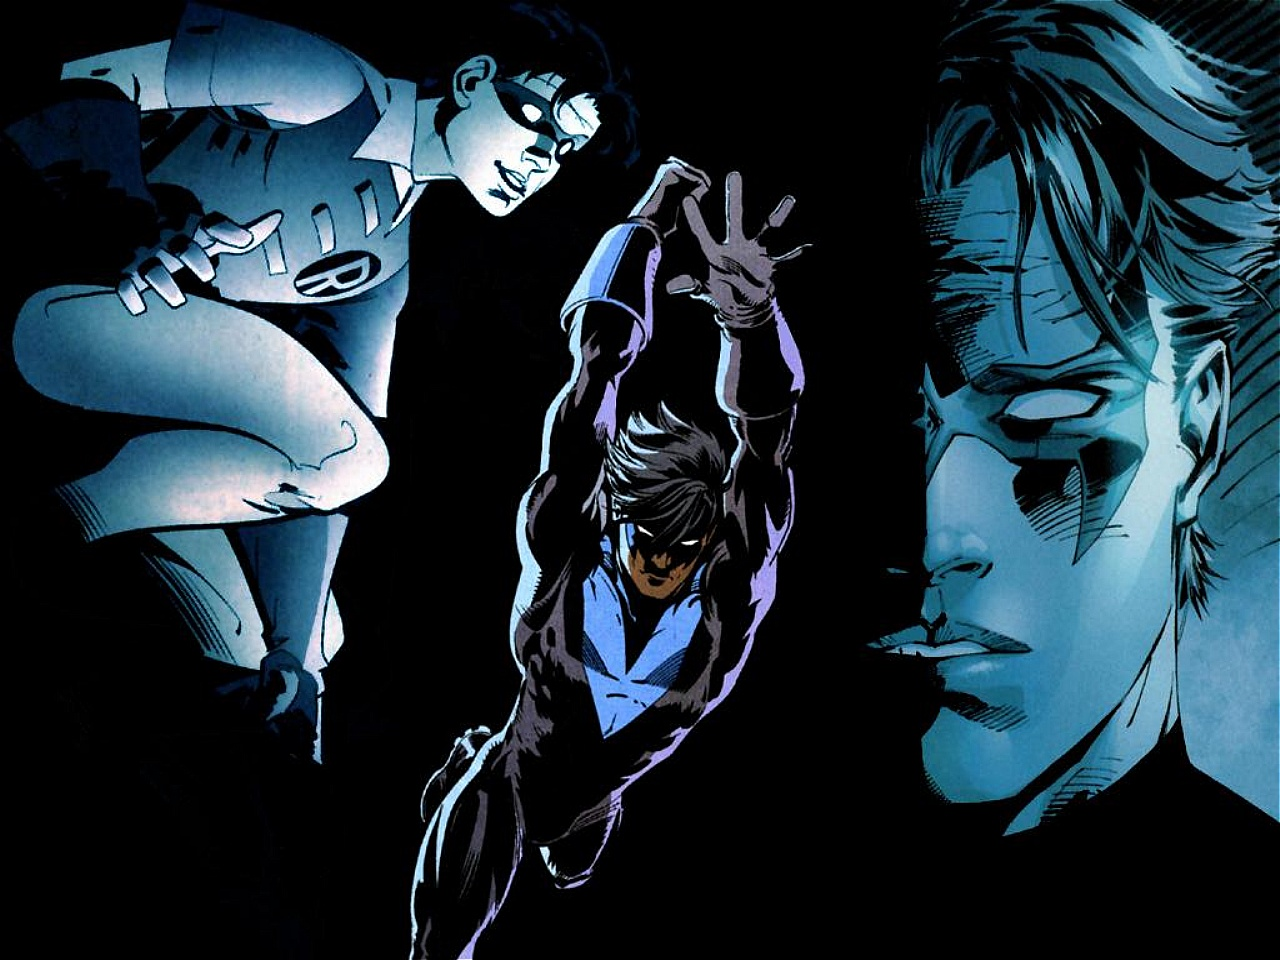 Nightwing Wallpaper Wallpaper 1280x960 Nightwing Wallpaper Picture 1280x960